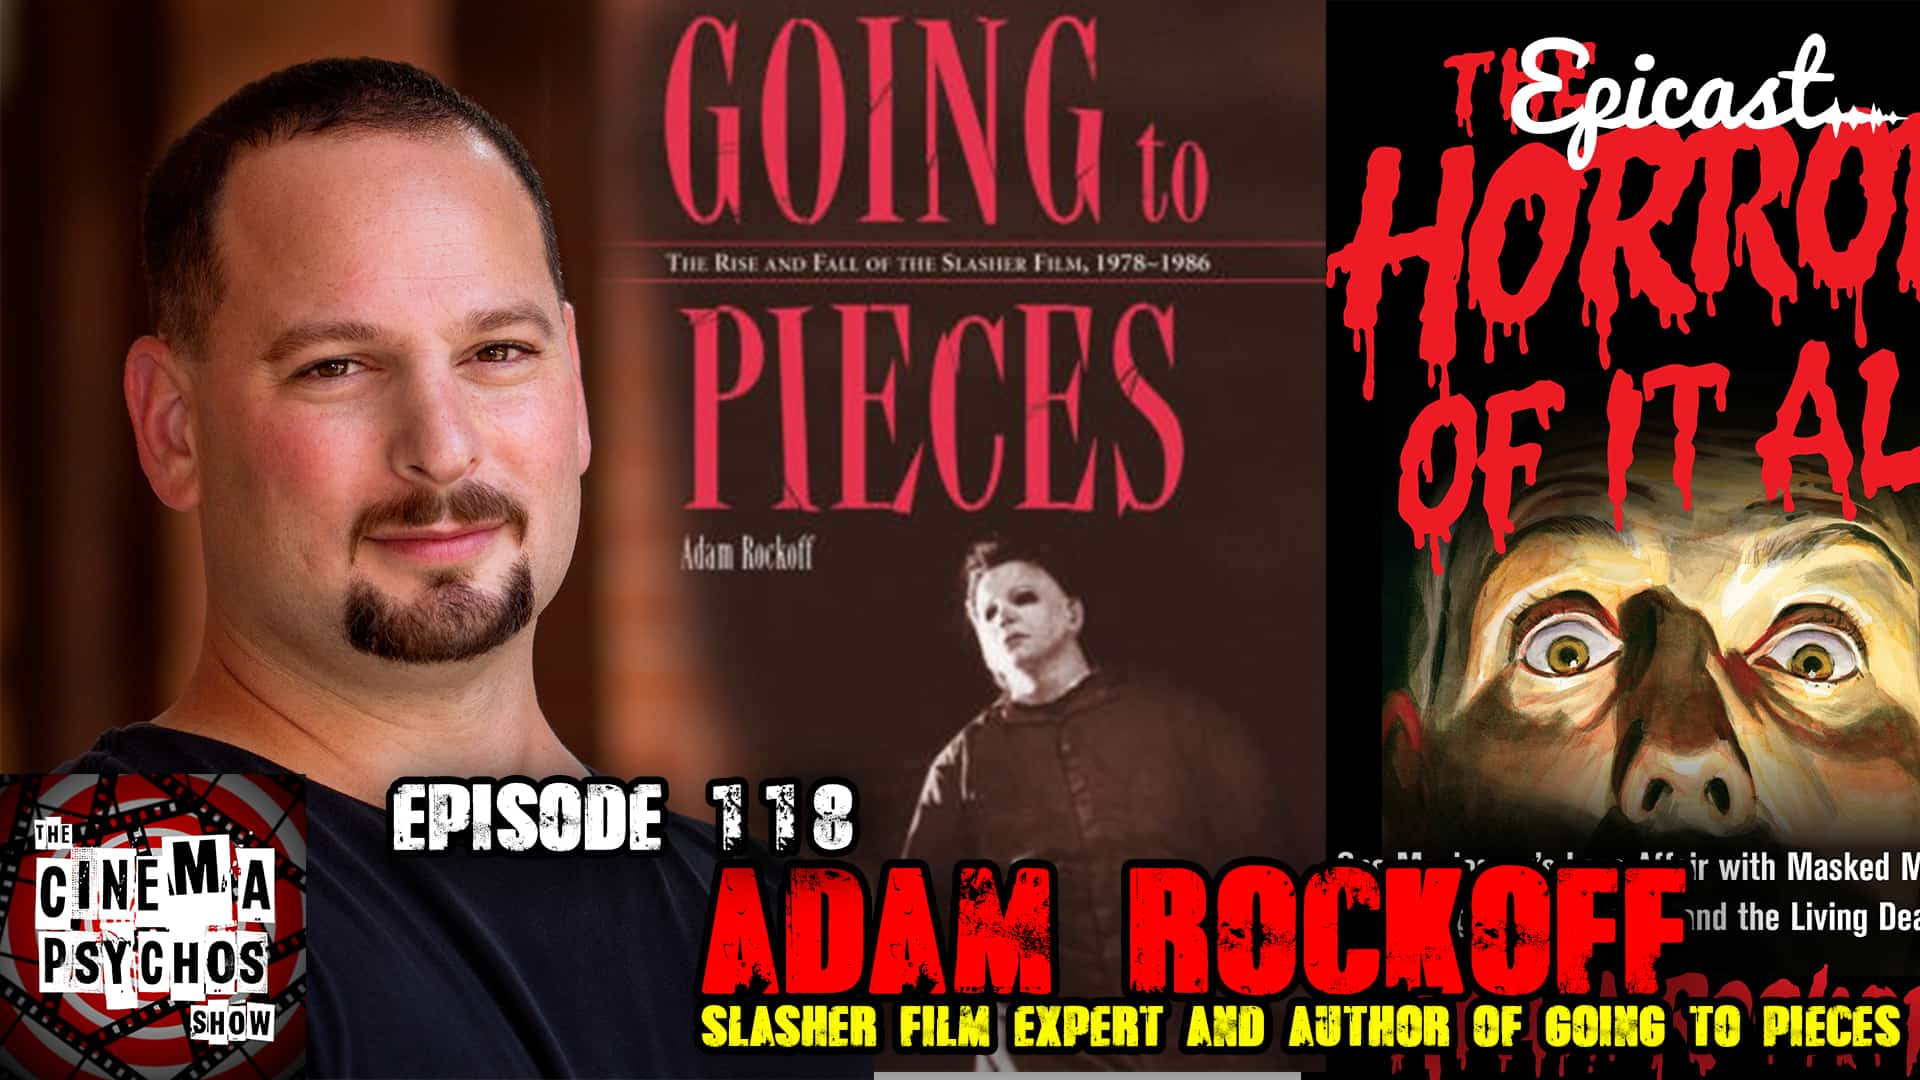 """Adam Rockoff- Slasher Film Expert and Author of """"Going to Pieces"""" - Episode  118 - The Cinema Psychos Show"""